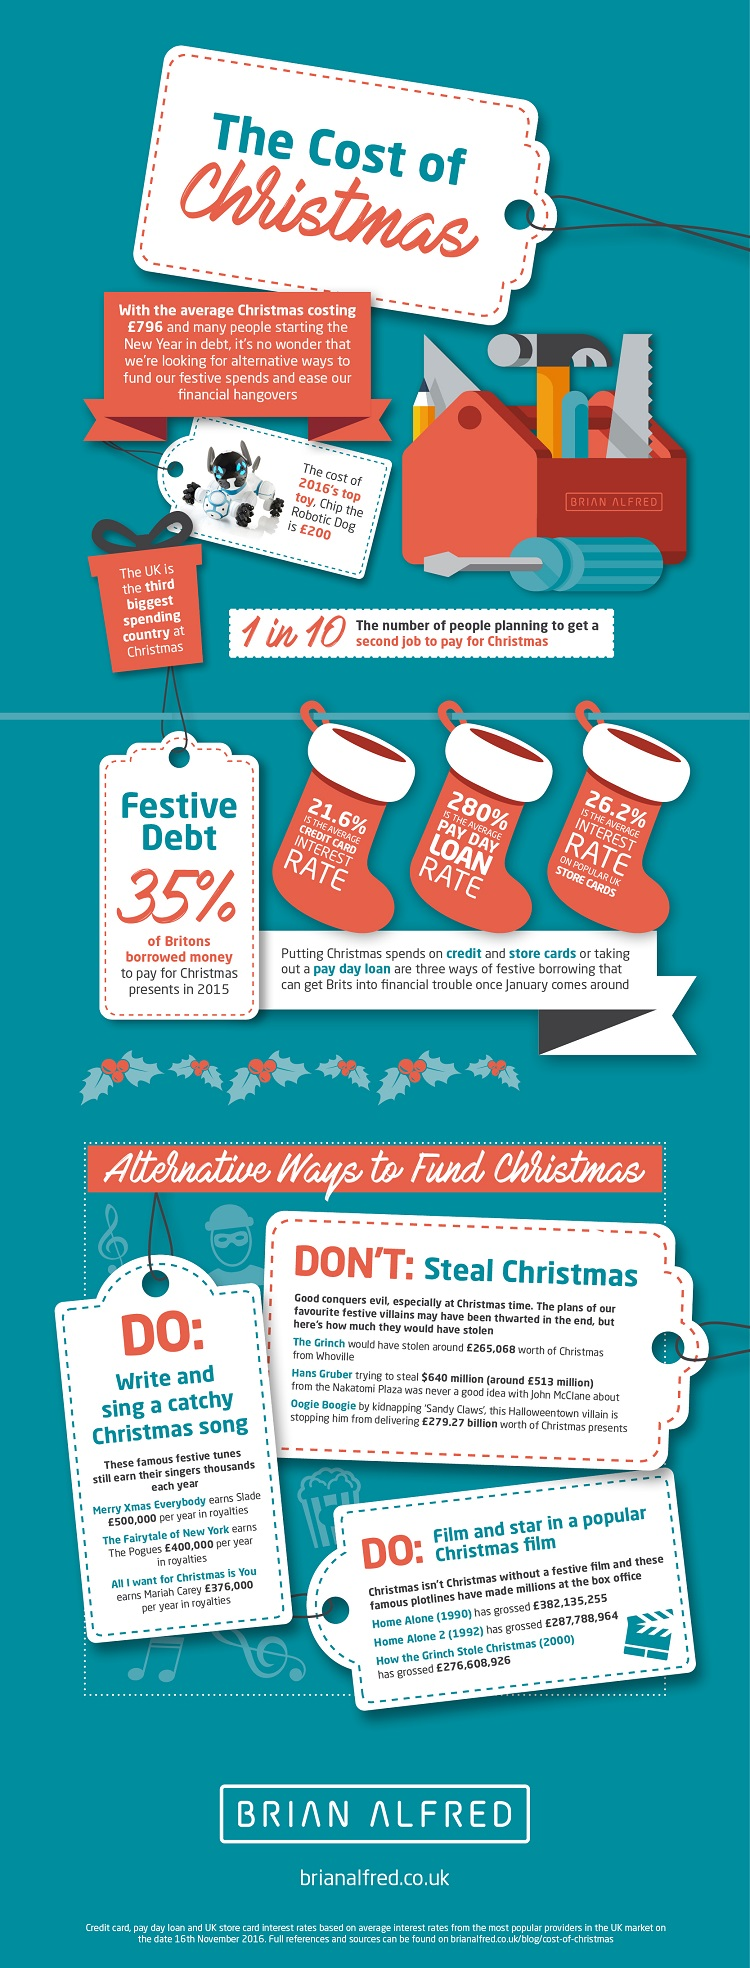 The Cost of Christmas and Alternative Ways to Fund Christmas